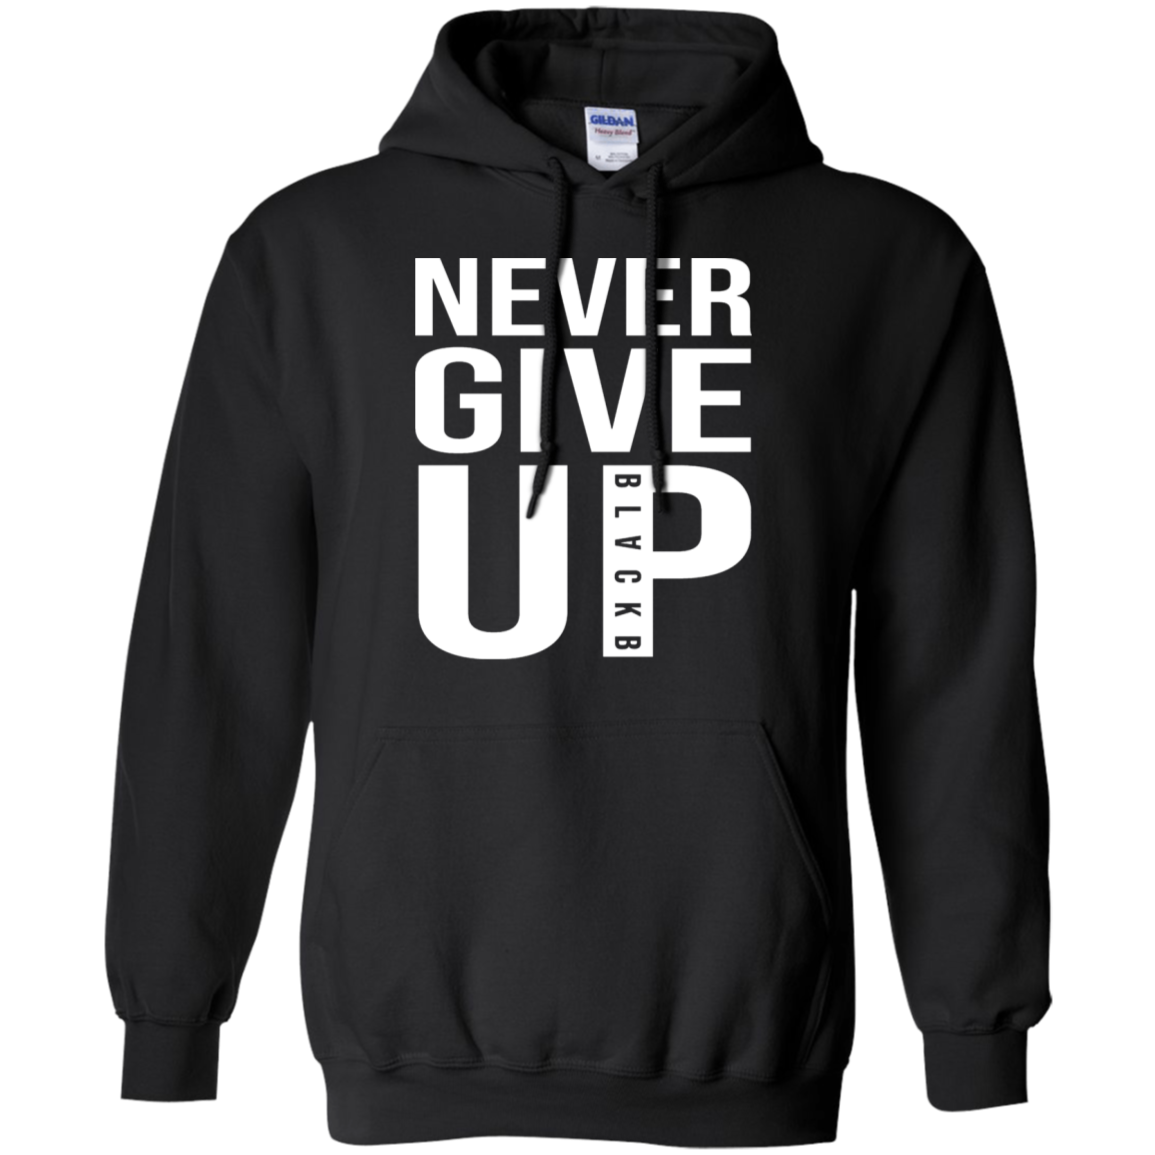 Salad Never Give Up Hoodie